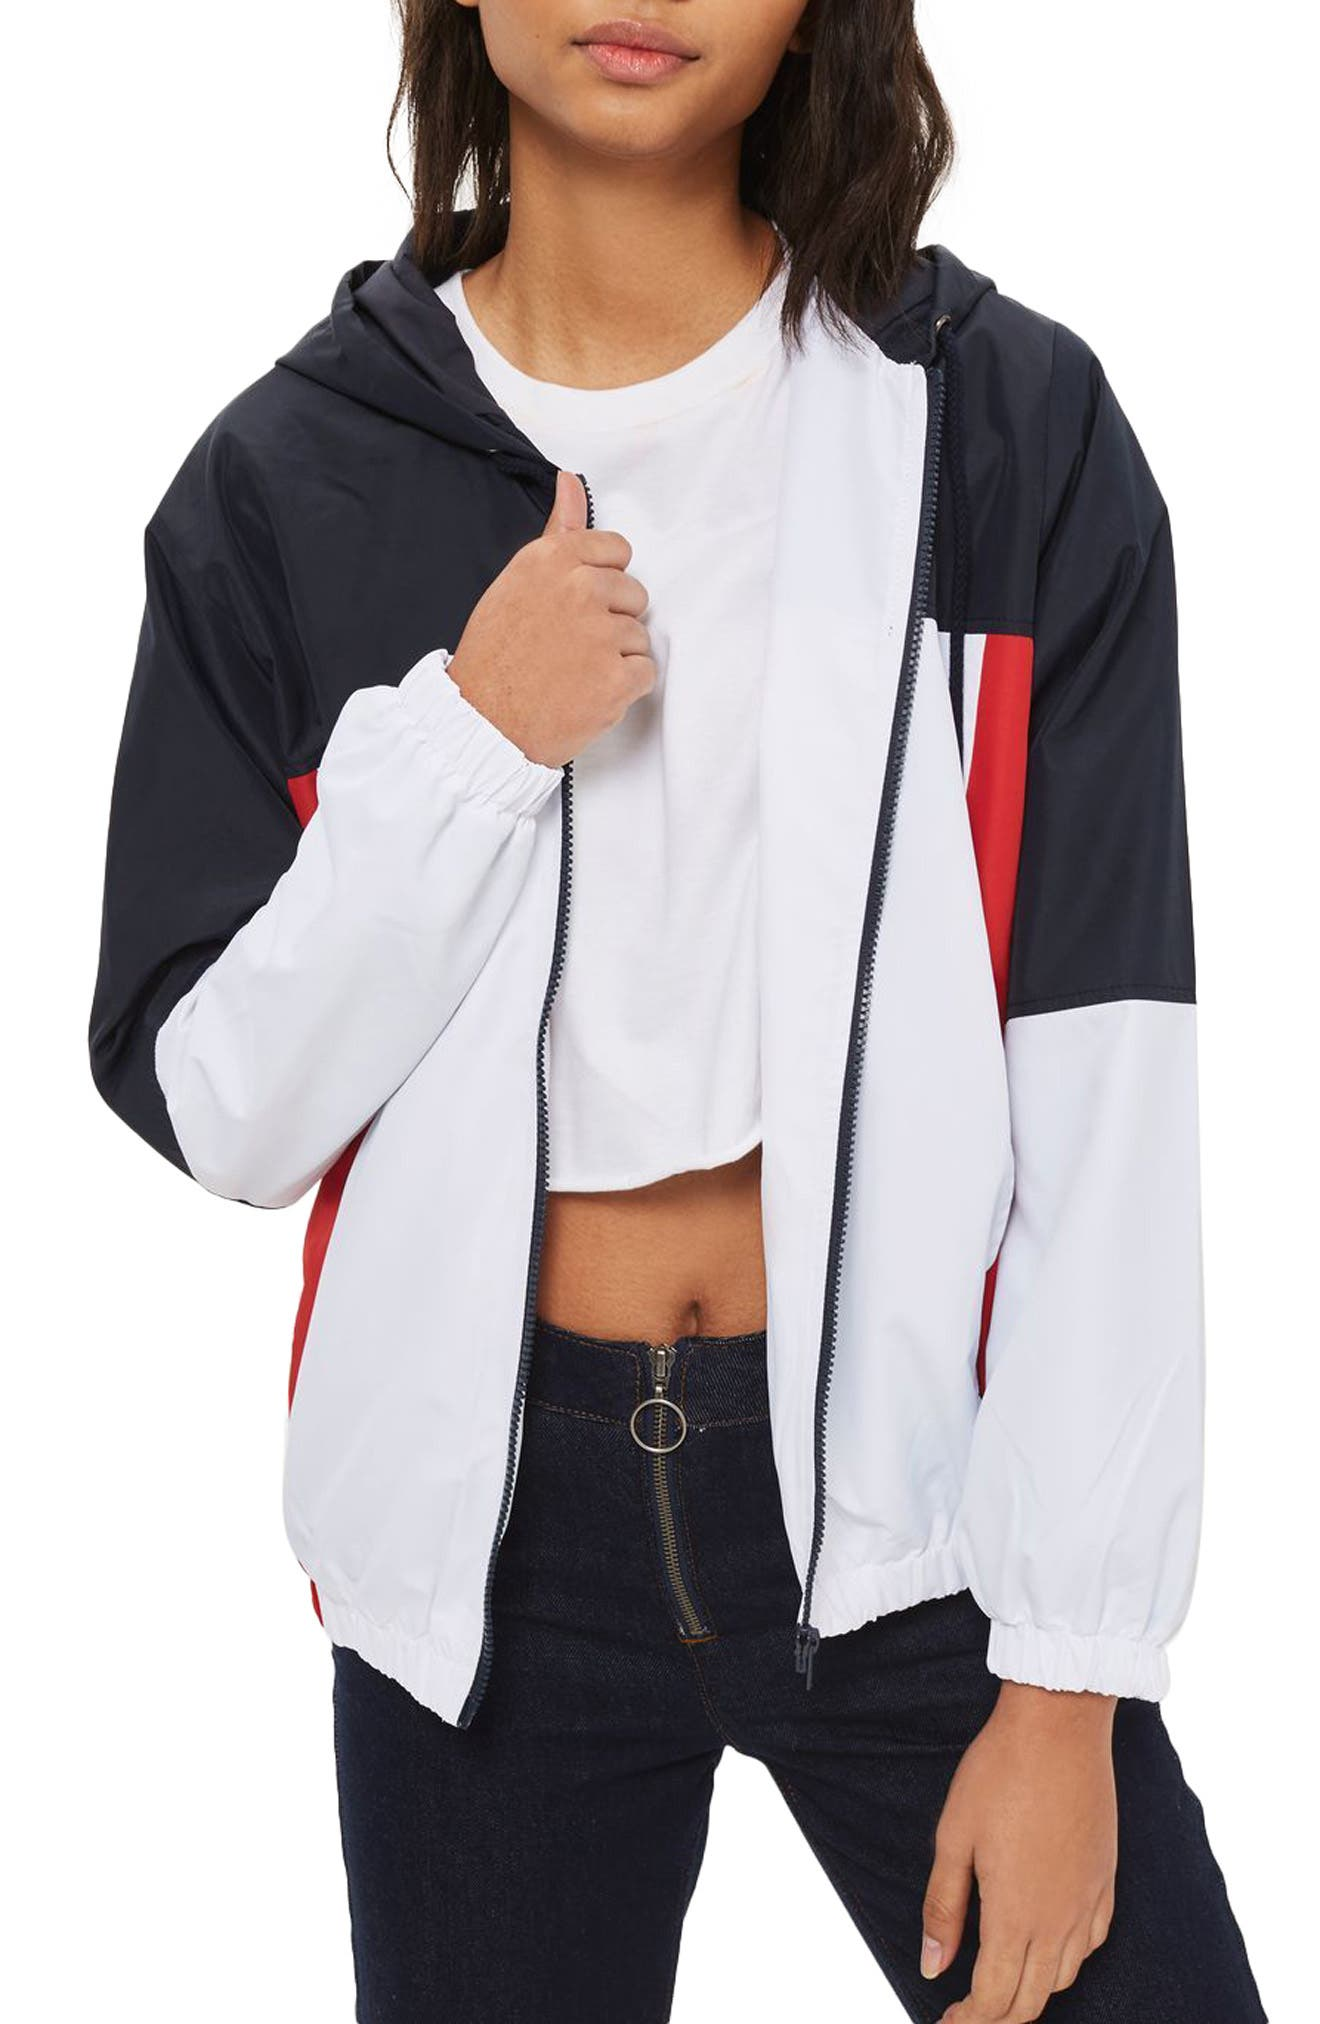 Colorblock Windbreaker Jacket,                             Main thumbnail 1, color,                             White Multi